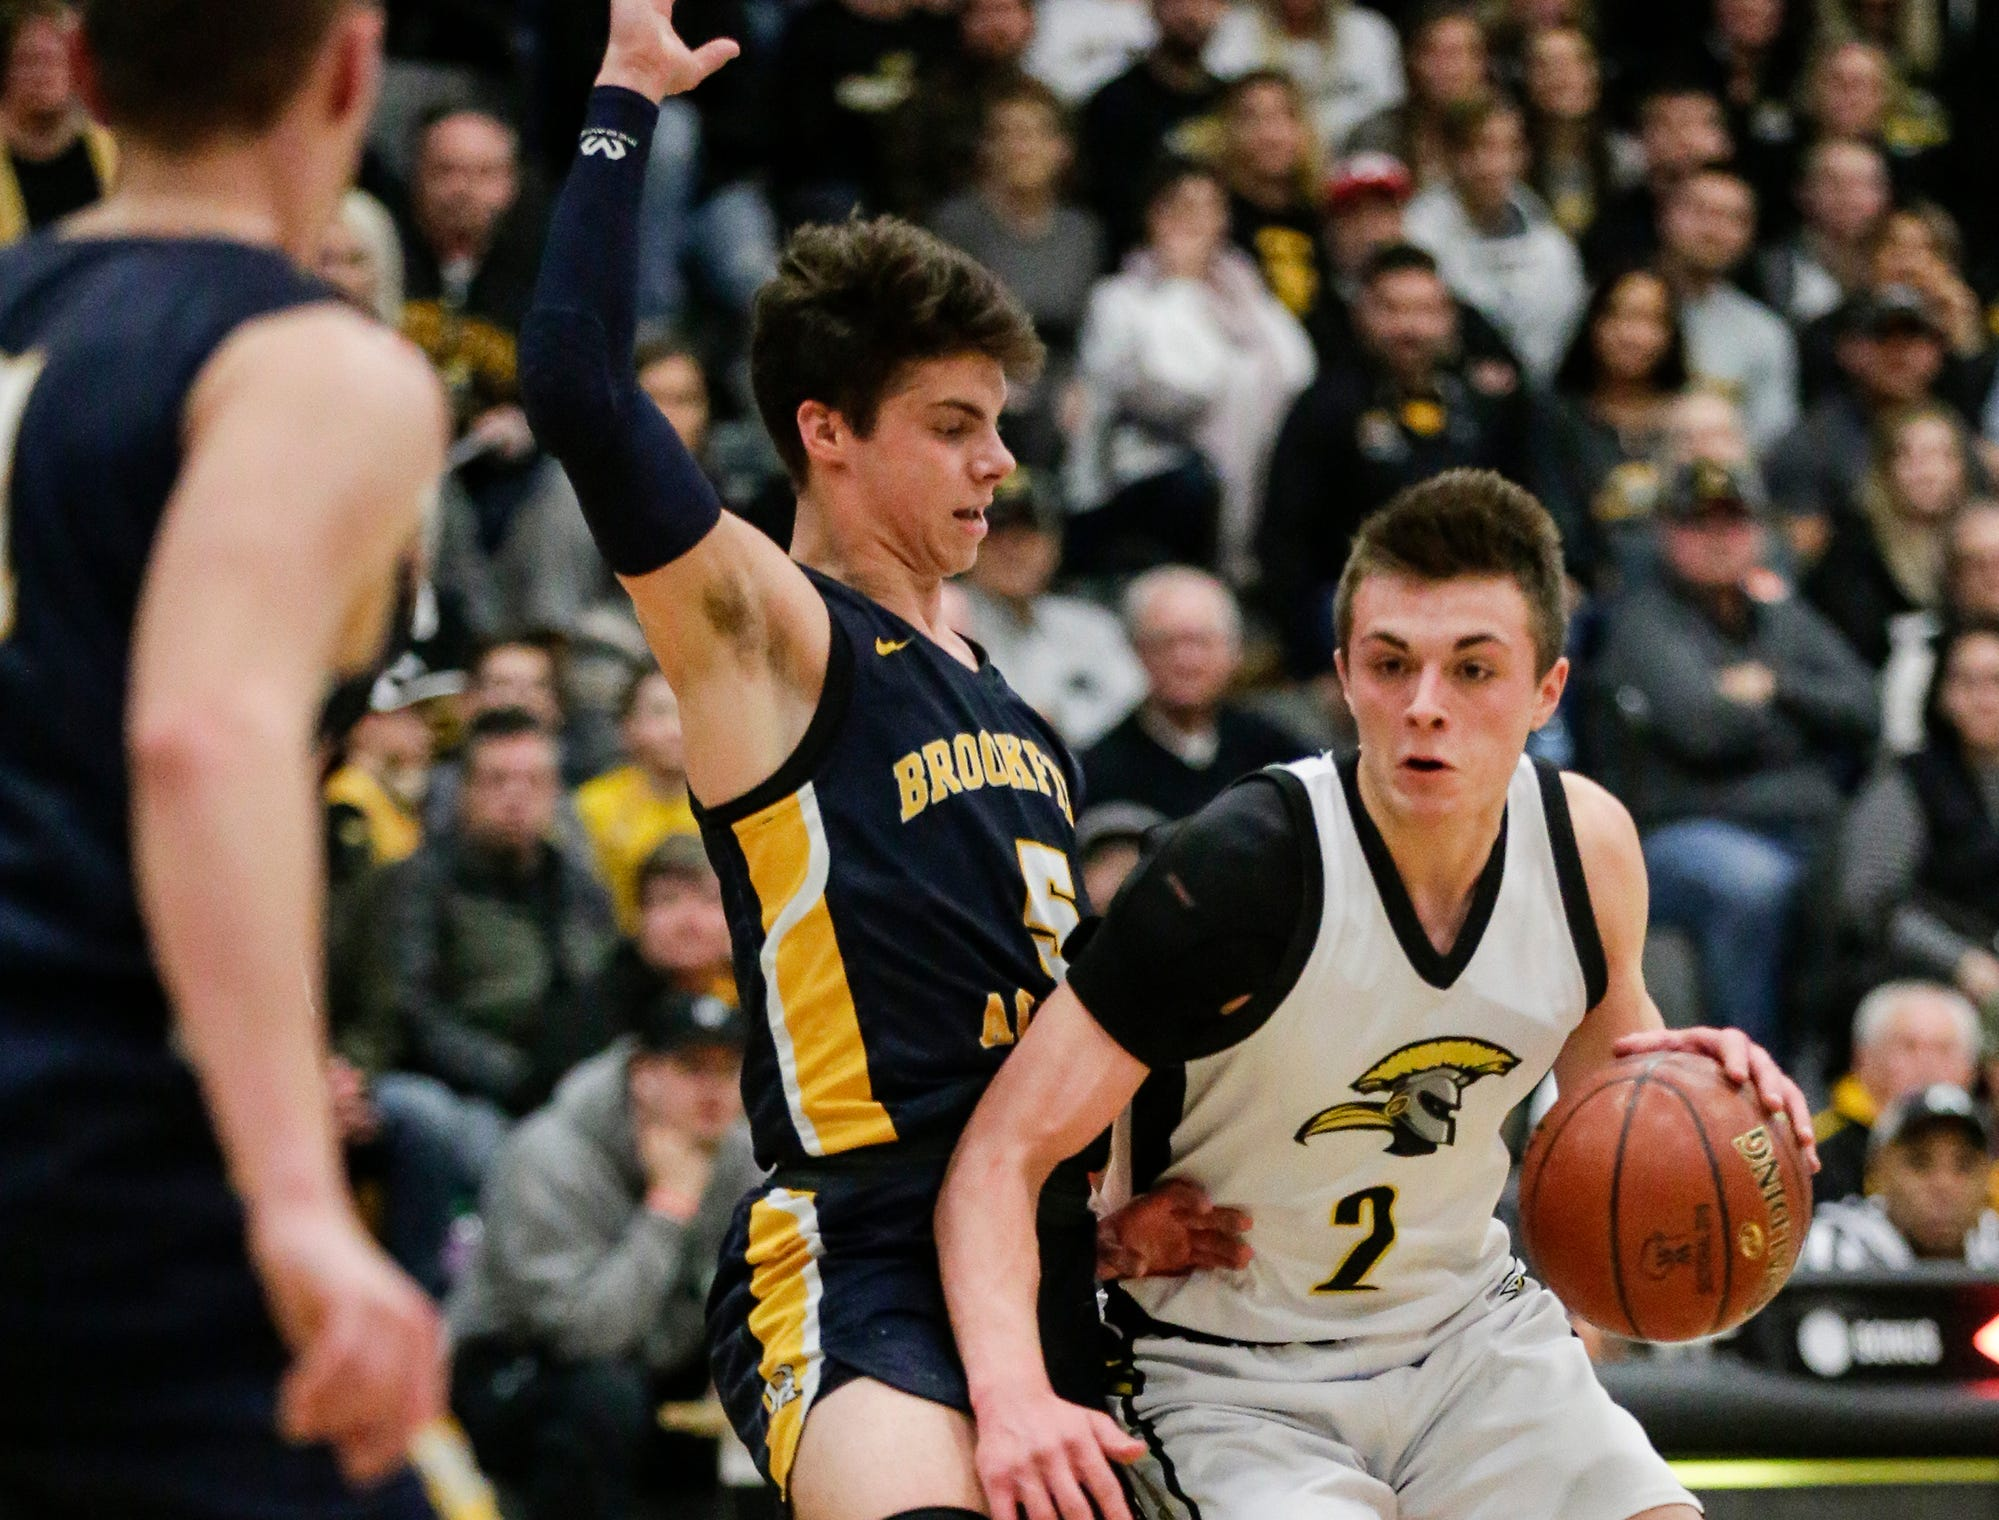 Waupun High School boys basketball's Trevor VandeZande works his way around Brookfield Academy's Max Kunnert during their WIAA division 3 sectional final game Saturday, March 9, 2019 in Brown Deer, Wis. Waupun won the game 64-58 and will advance to the state tournament. Doug Raflik/USA TODAY NETWORK-Wisconsin